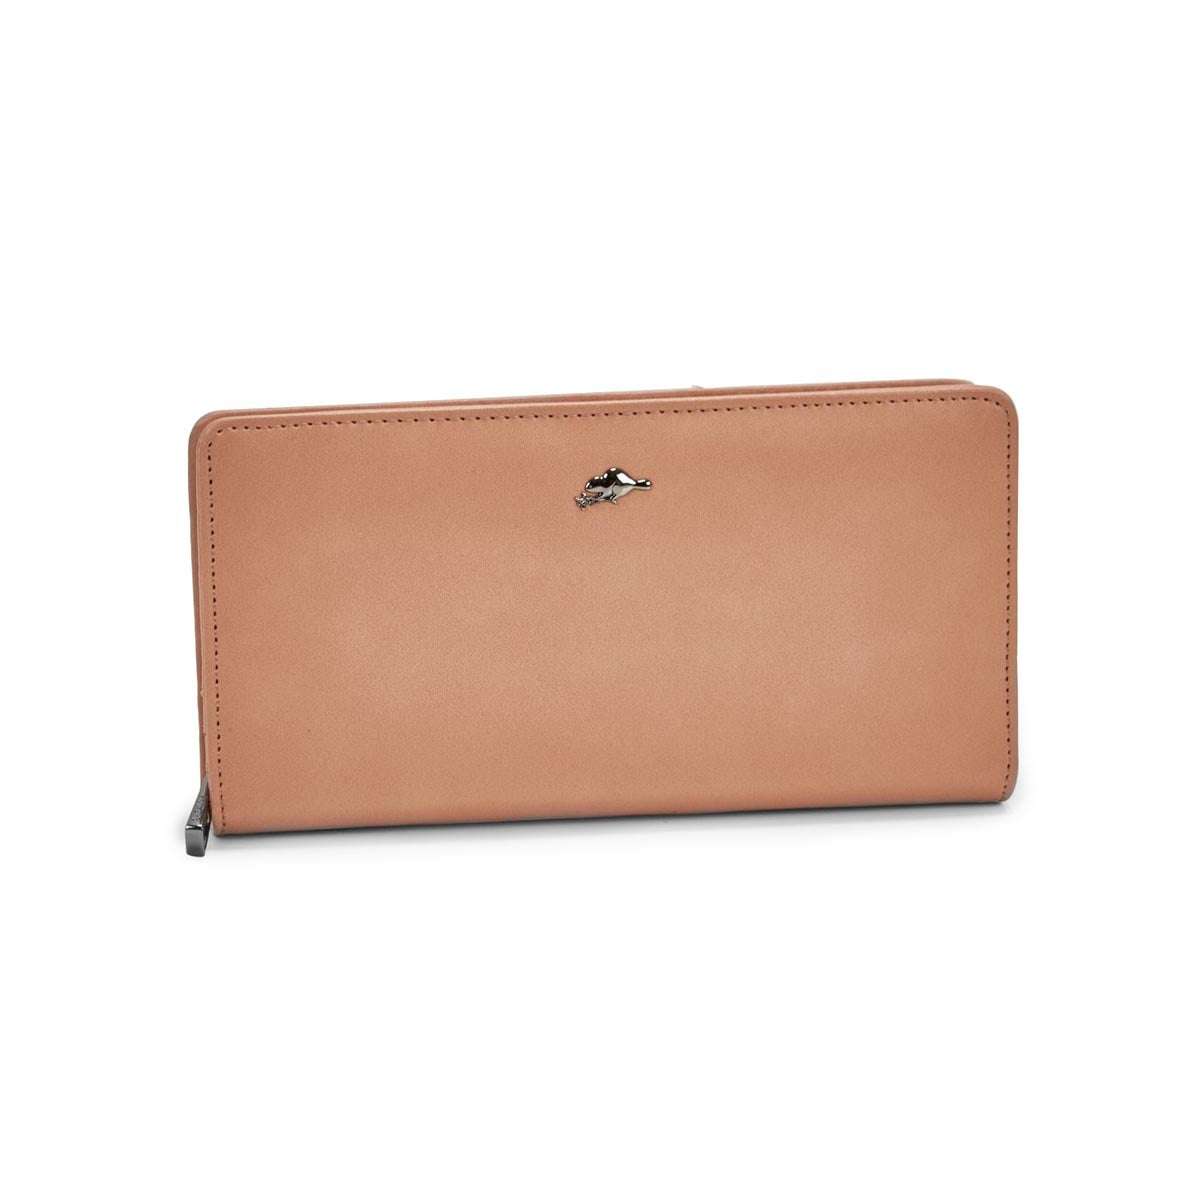 Women's CAVERN blush clutch wallet